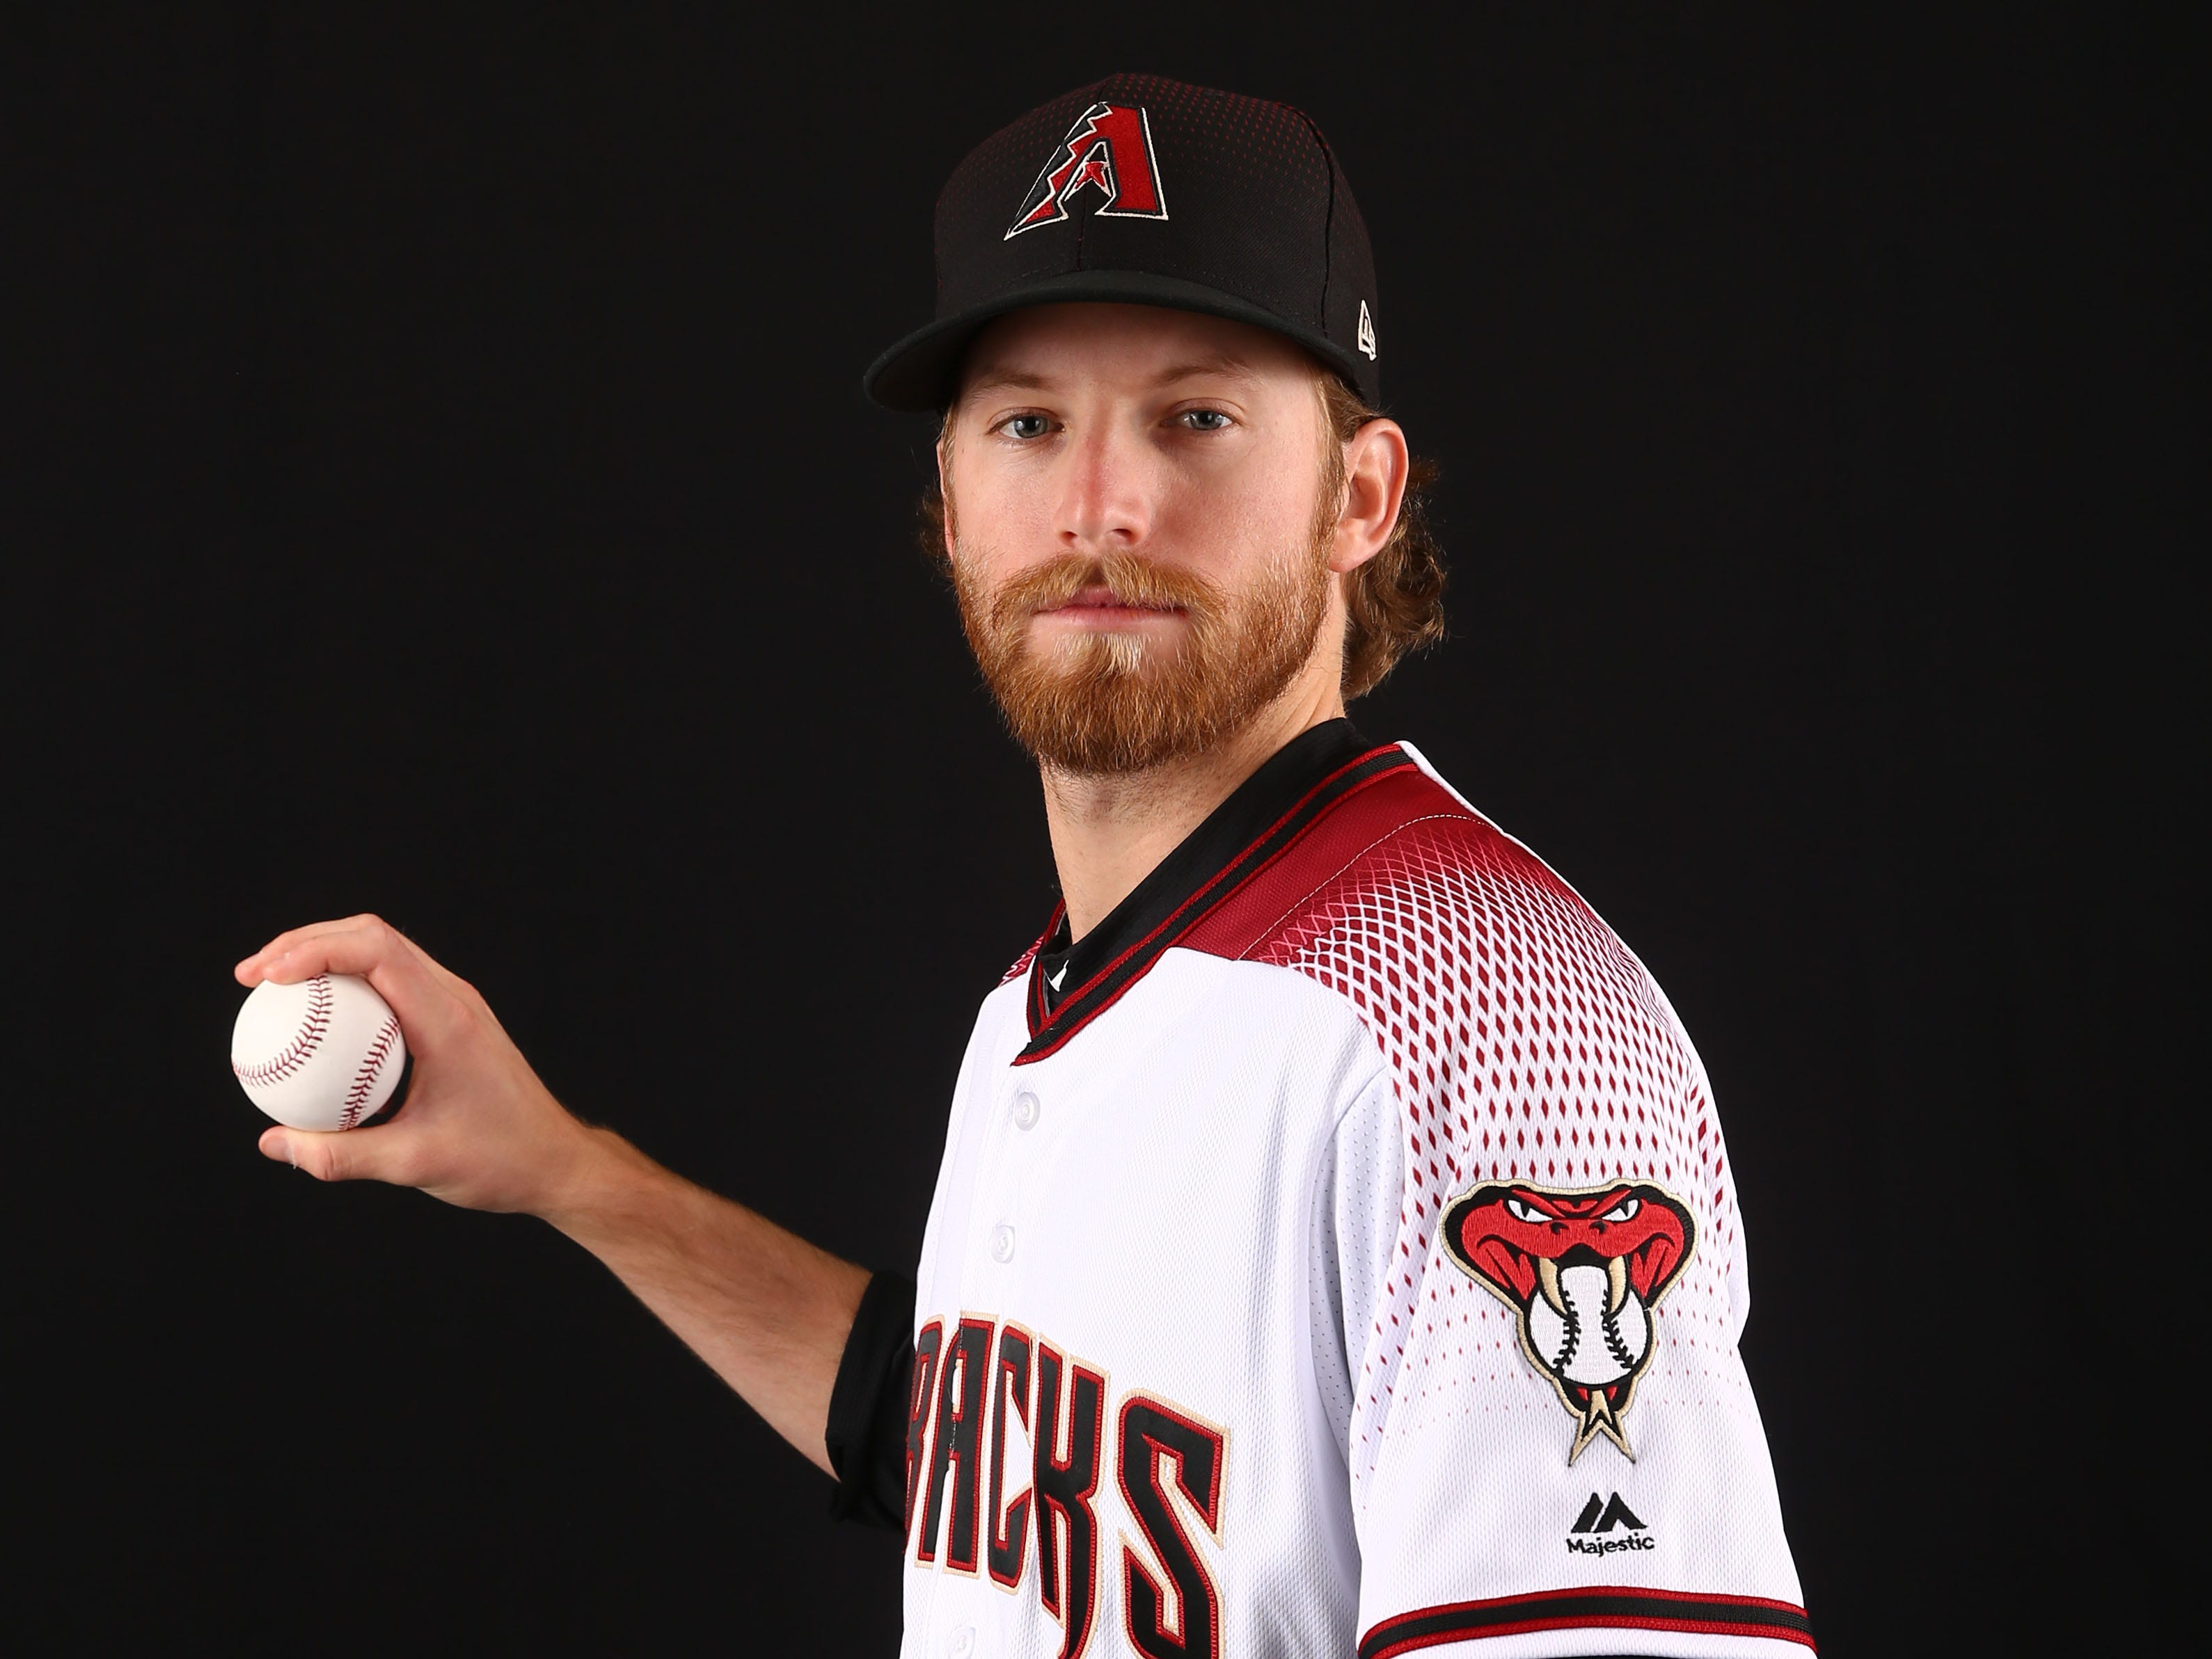 Jimmie Sherfy of the Arizona Diamondbacks poses for a photo during the annual Spring Training Photo Day on Feb. 20 at Salt River Fields in Scottsdale, Ariz.